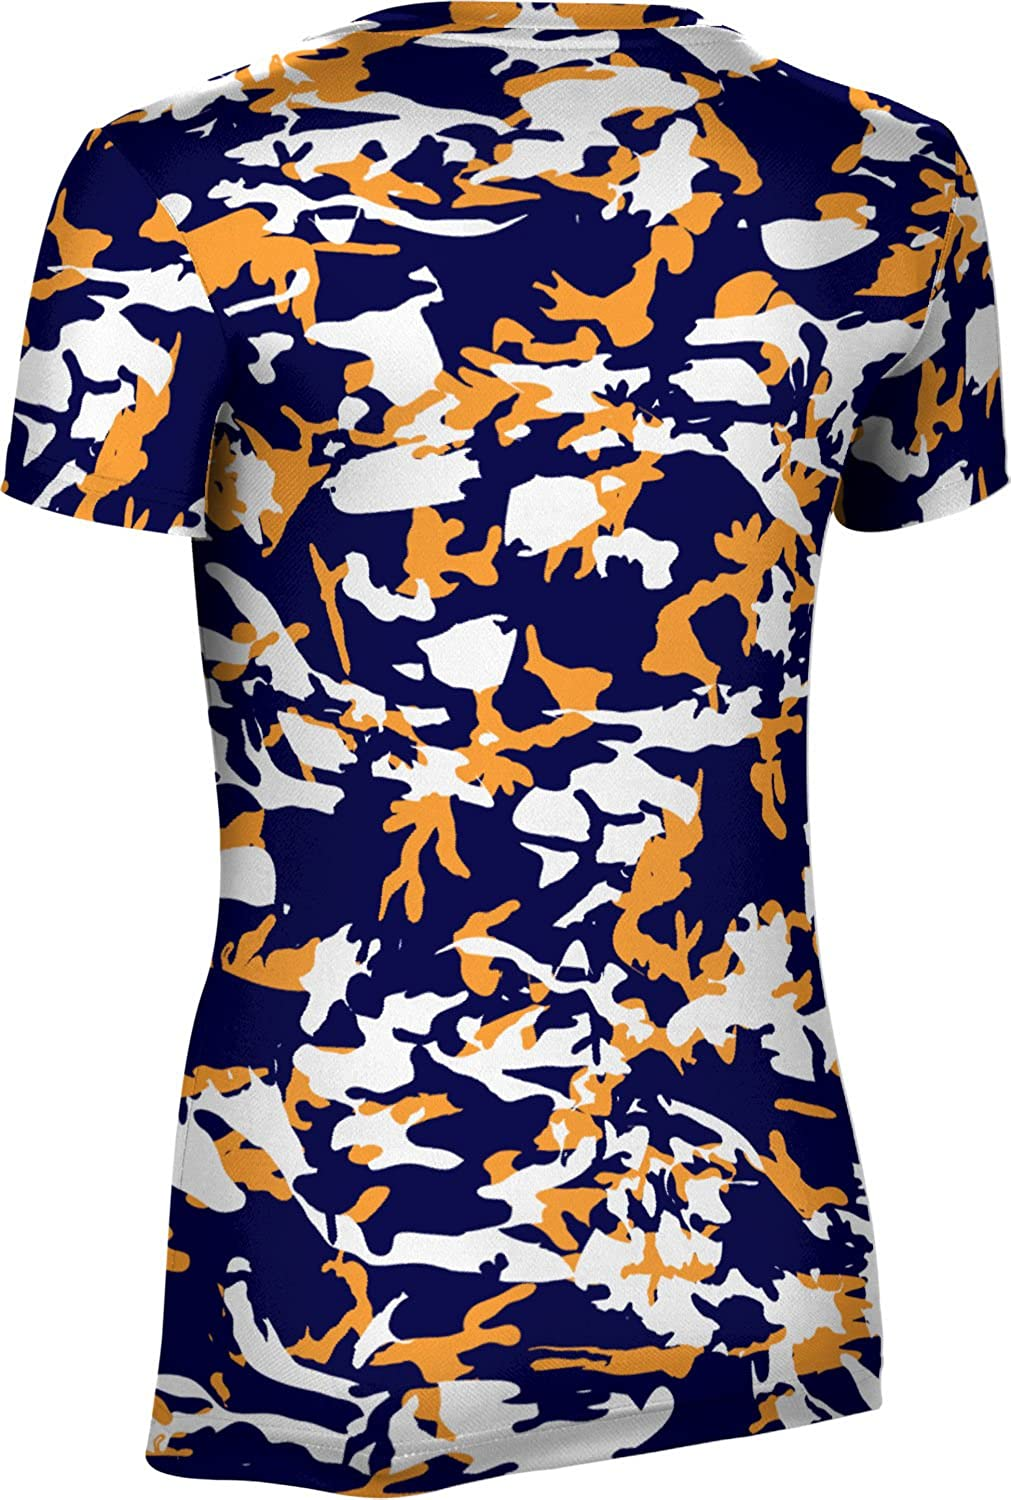 ProSphere Women's USS Jefferson City Military Camo Tech Tee